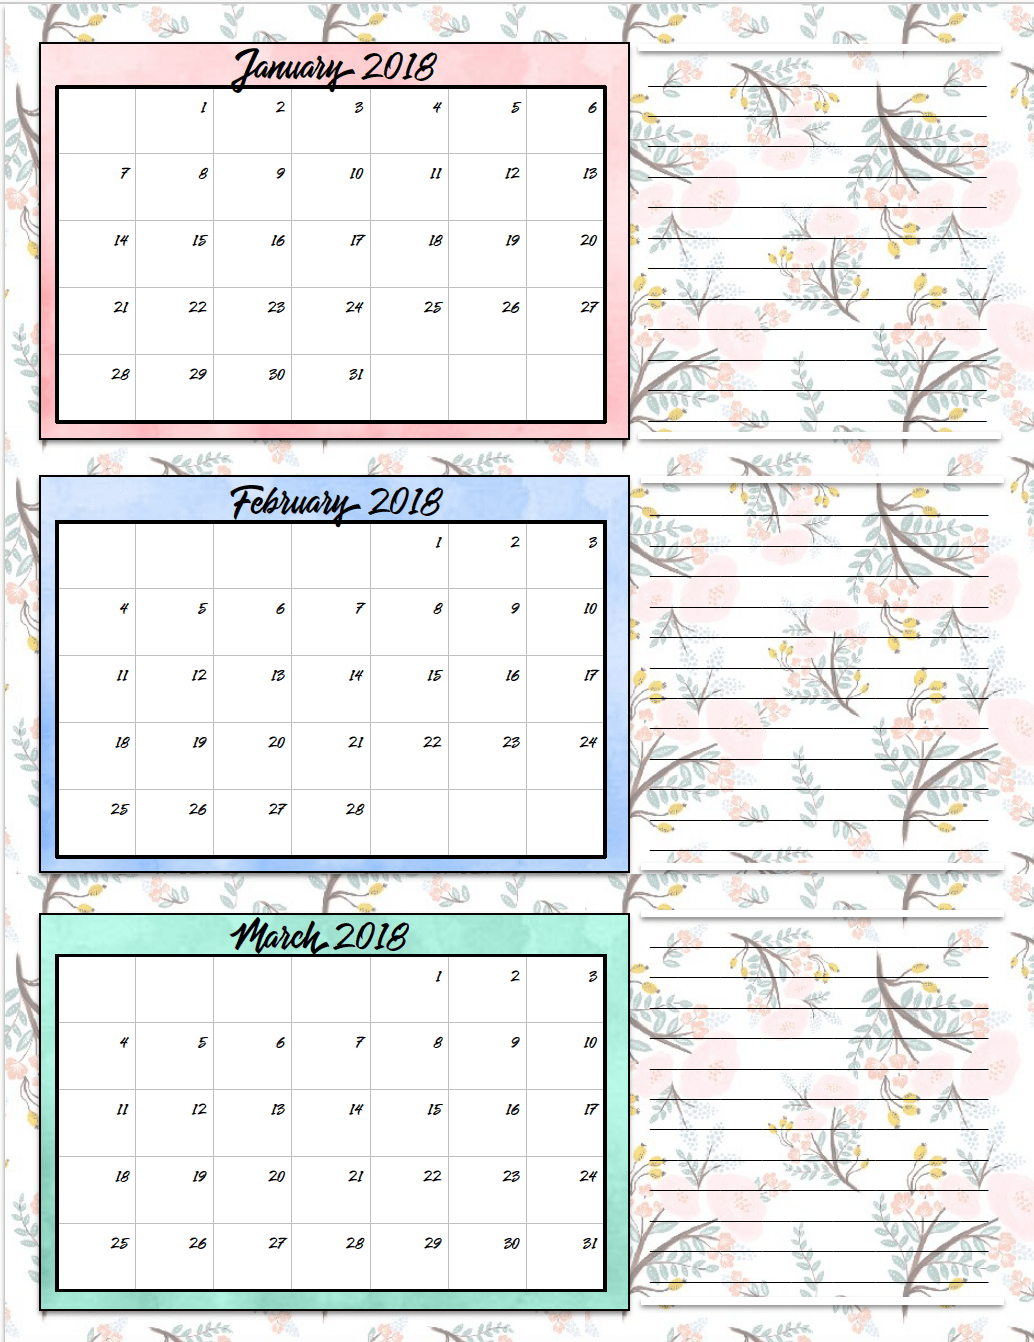 Quarterly Calendar Ideas : Quarterly calendar template choice image